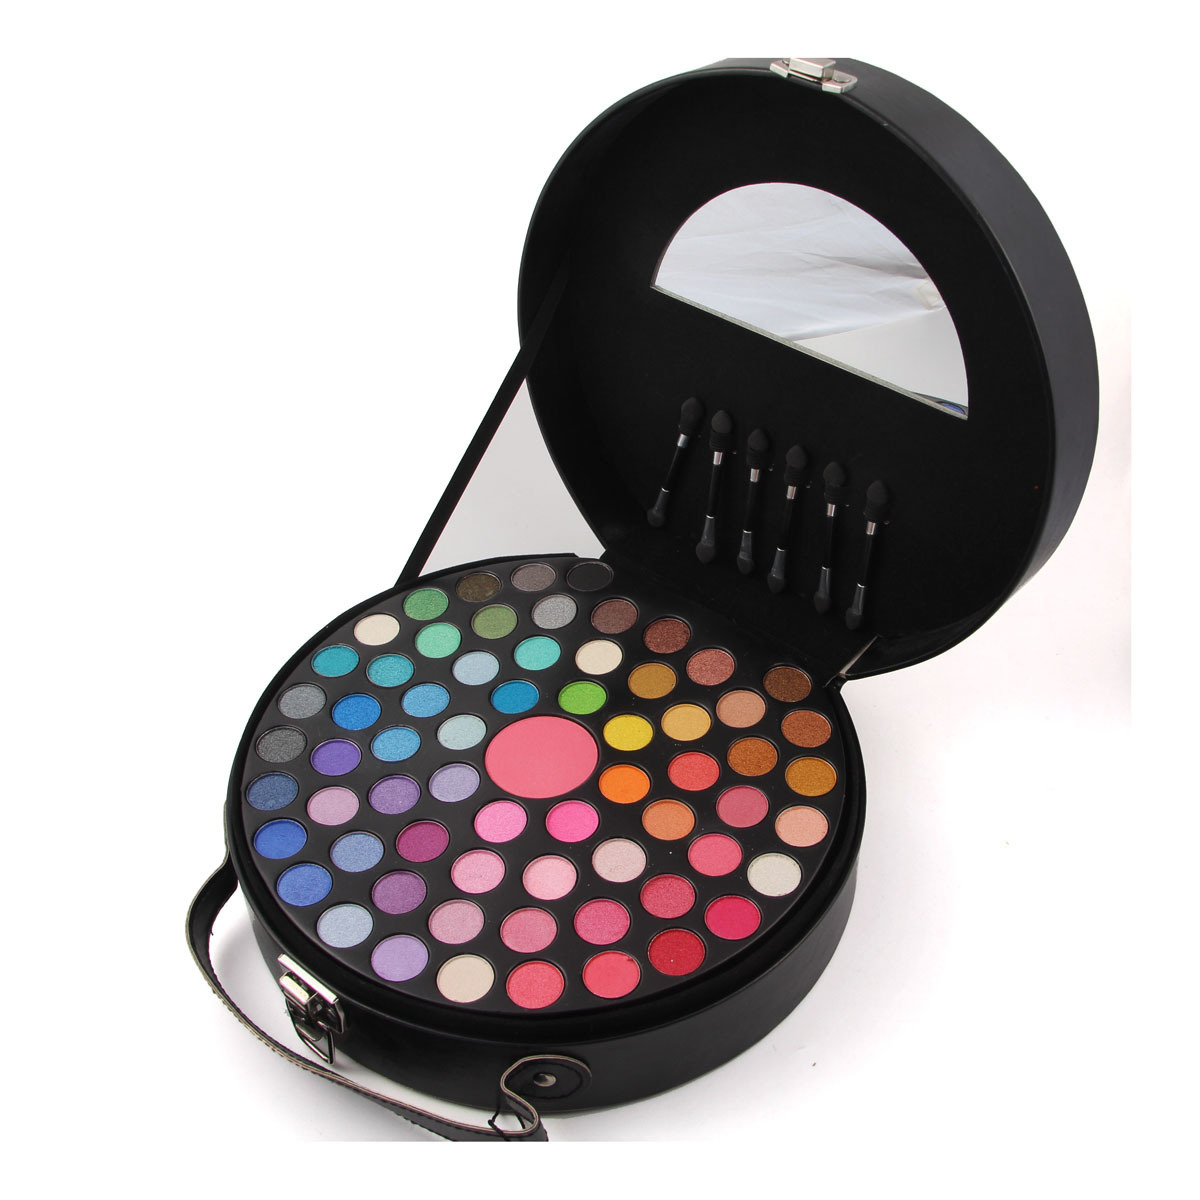 65 Color MISS ROSE Eye Shadow Palette Lady Blush Eye Shadow Makeup Box Portable Round Cosmetic Case Set Make-up Essential professional make up 144 color eye shadow 3 color blush 3 color eyebrow powder makeup set box